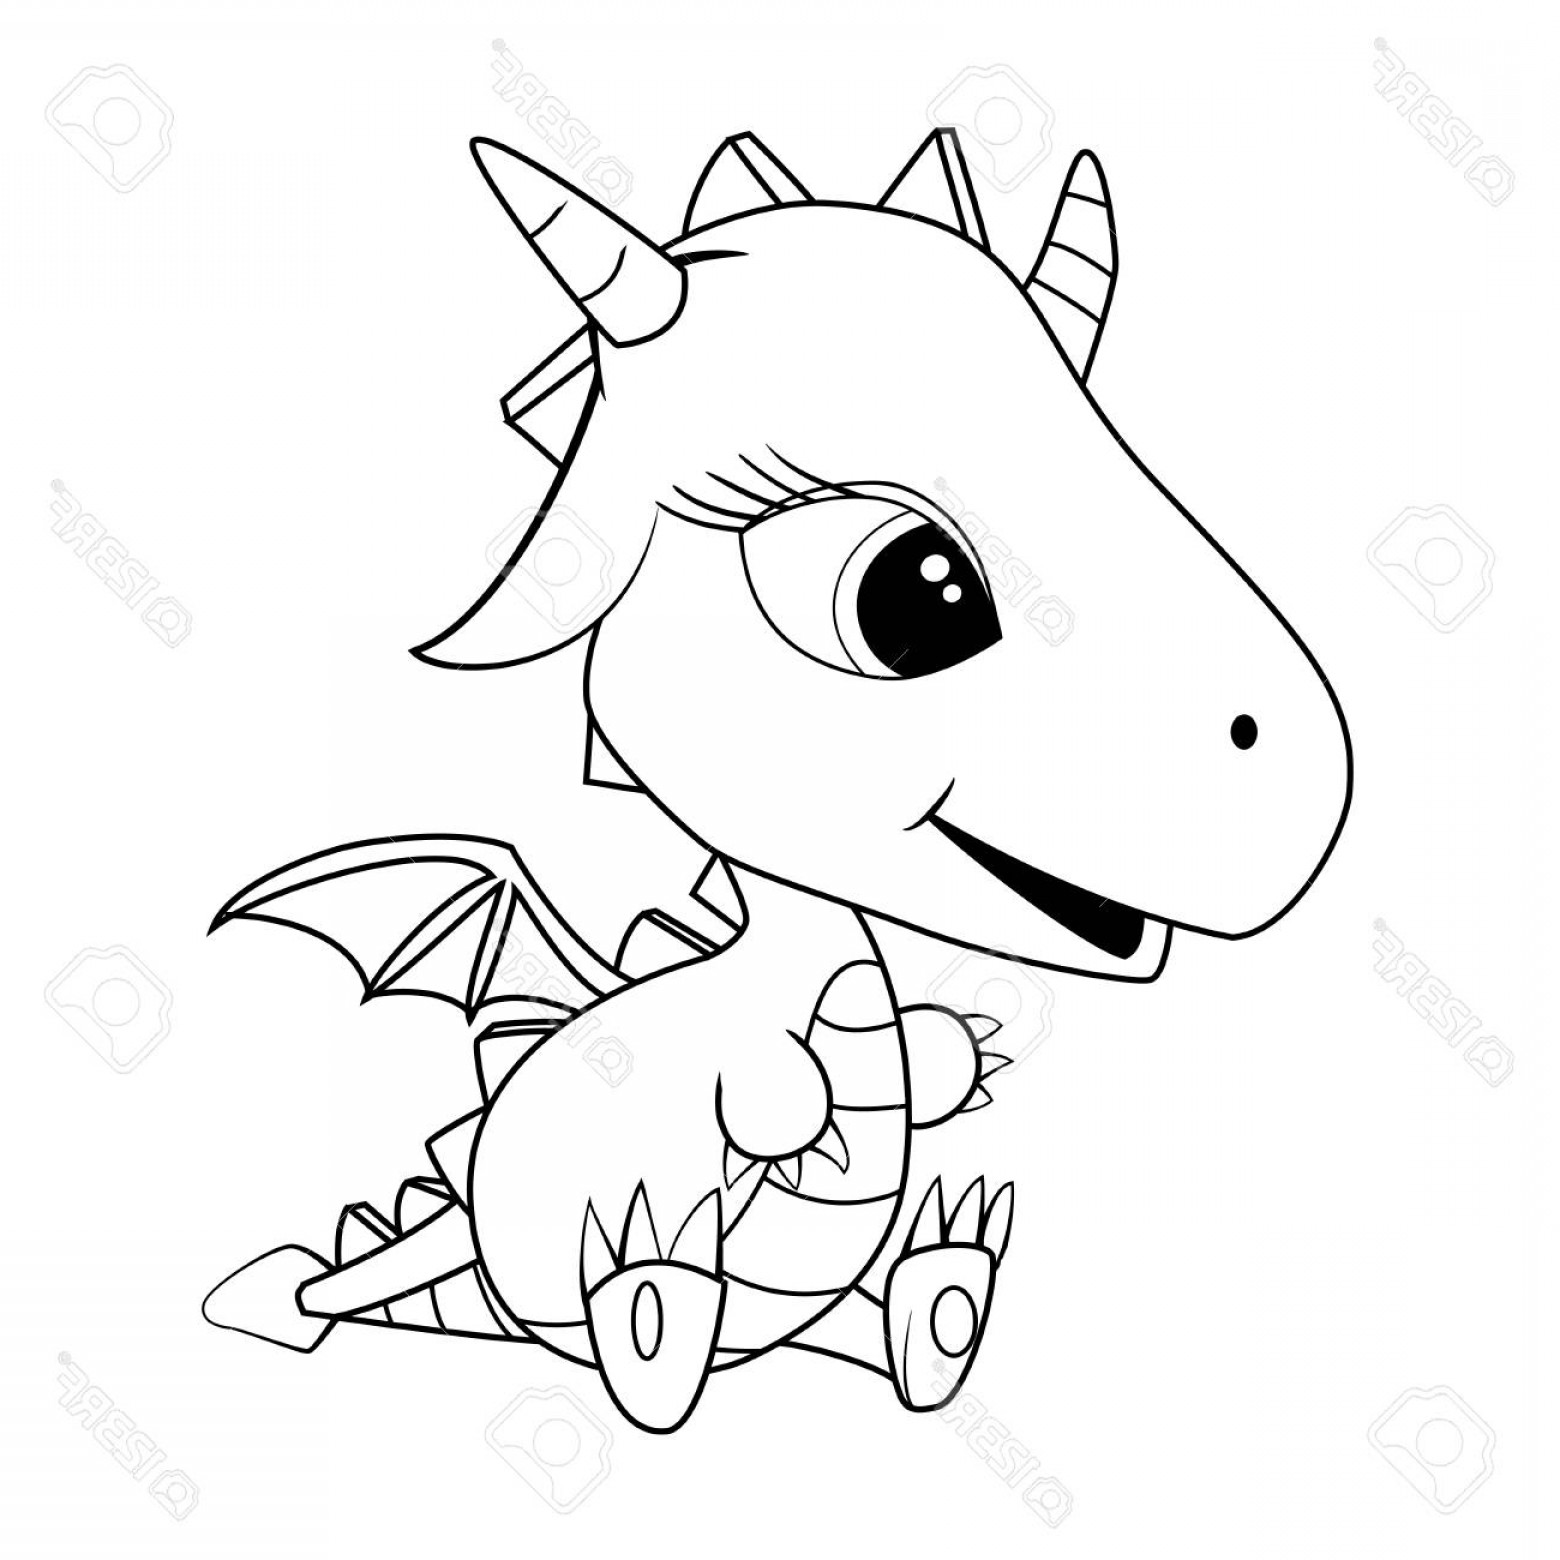 Baby Dragon Silhouette Vector: Photostock Vector Illustration Of Cute Cartoon Baby Dragon Vector Eps